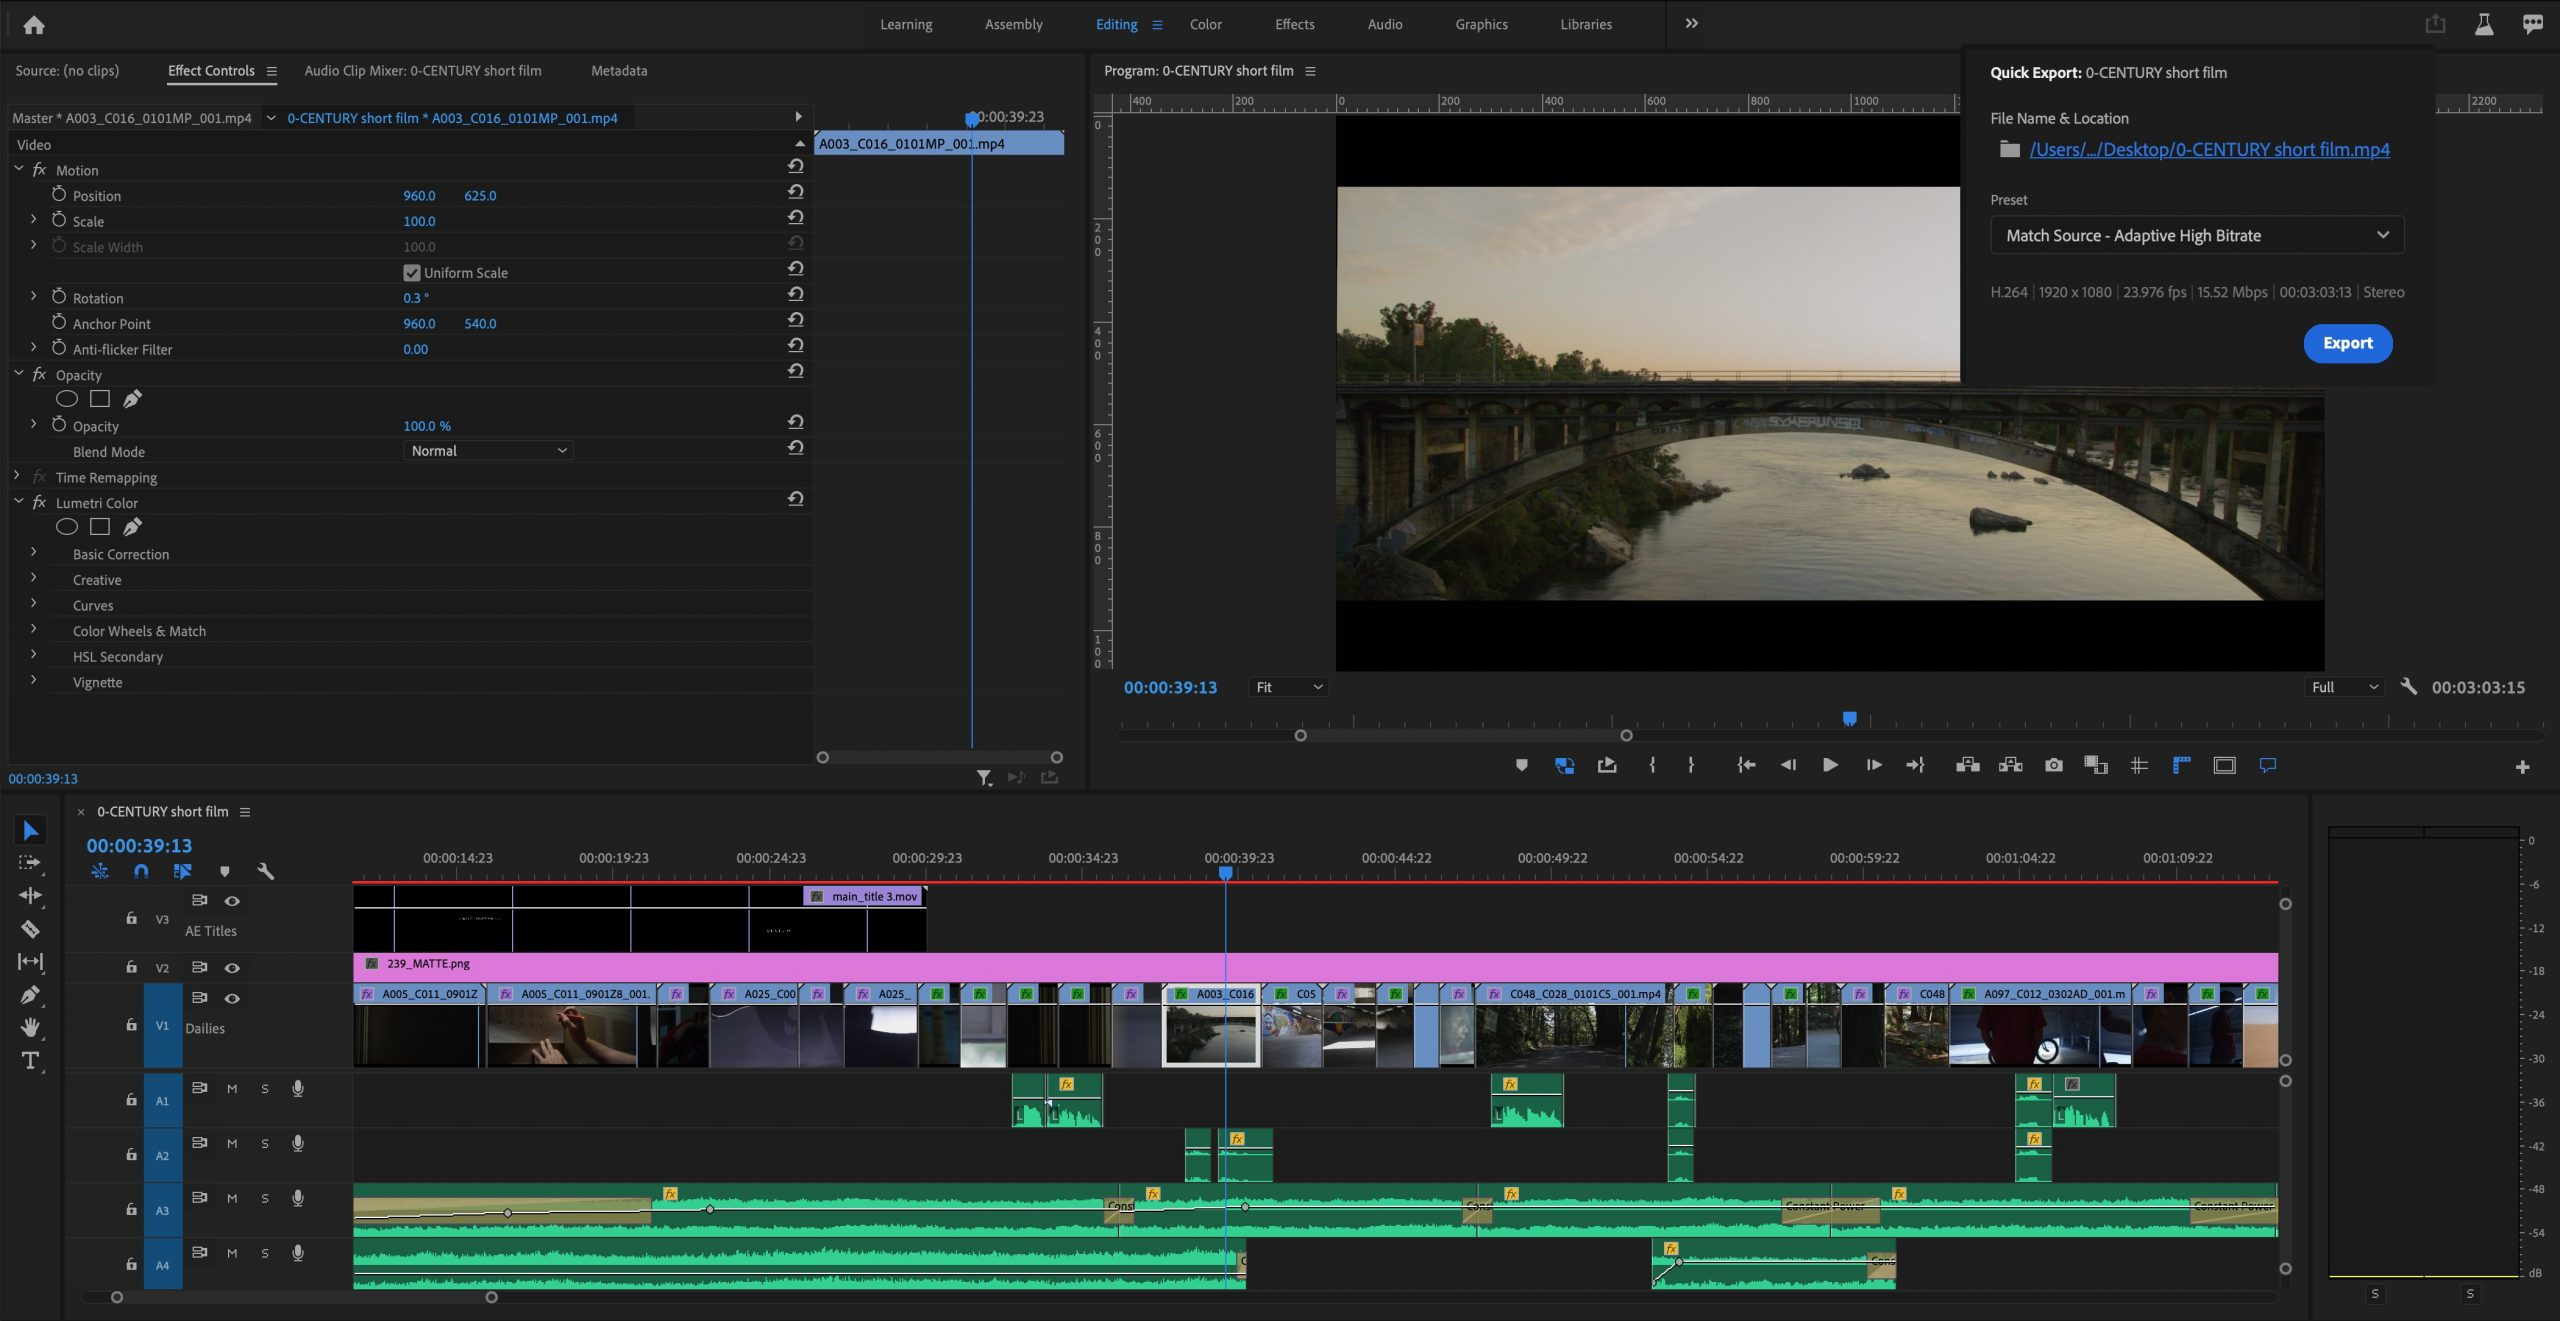 Adobe Quick Export In Premiere Pro Media Replacement In Motion Graphics Templates Newsshooter